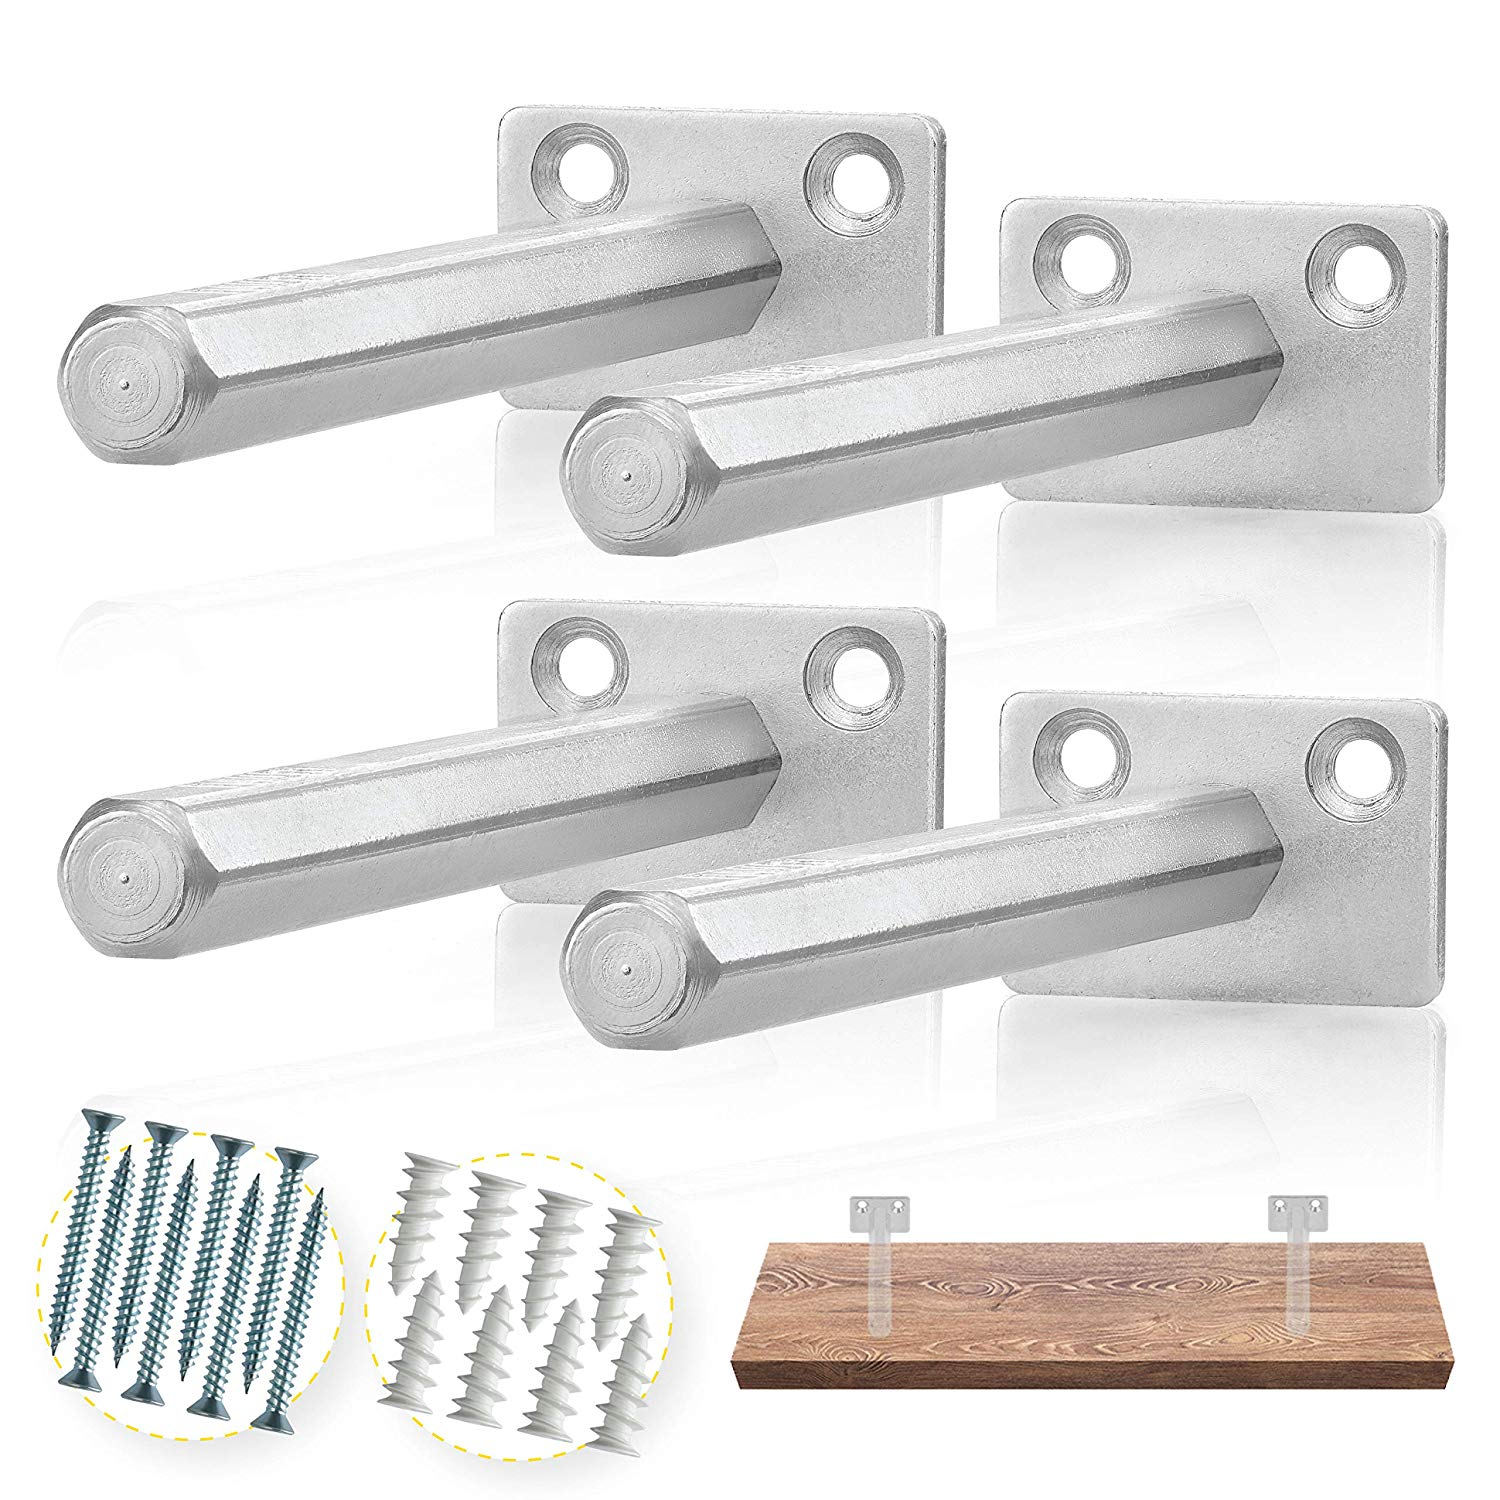 batoda floating shelf bracket pcs galvanized steel xuzl support concealed fixings blind supports hidden brackets for wood shelves mounting drywall with drawer diy adjustable